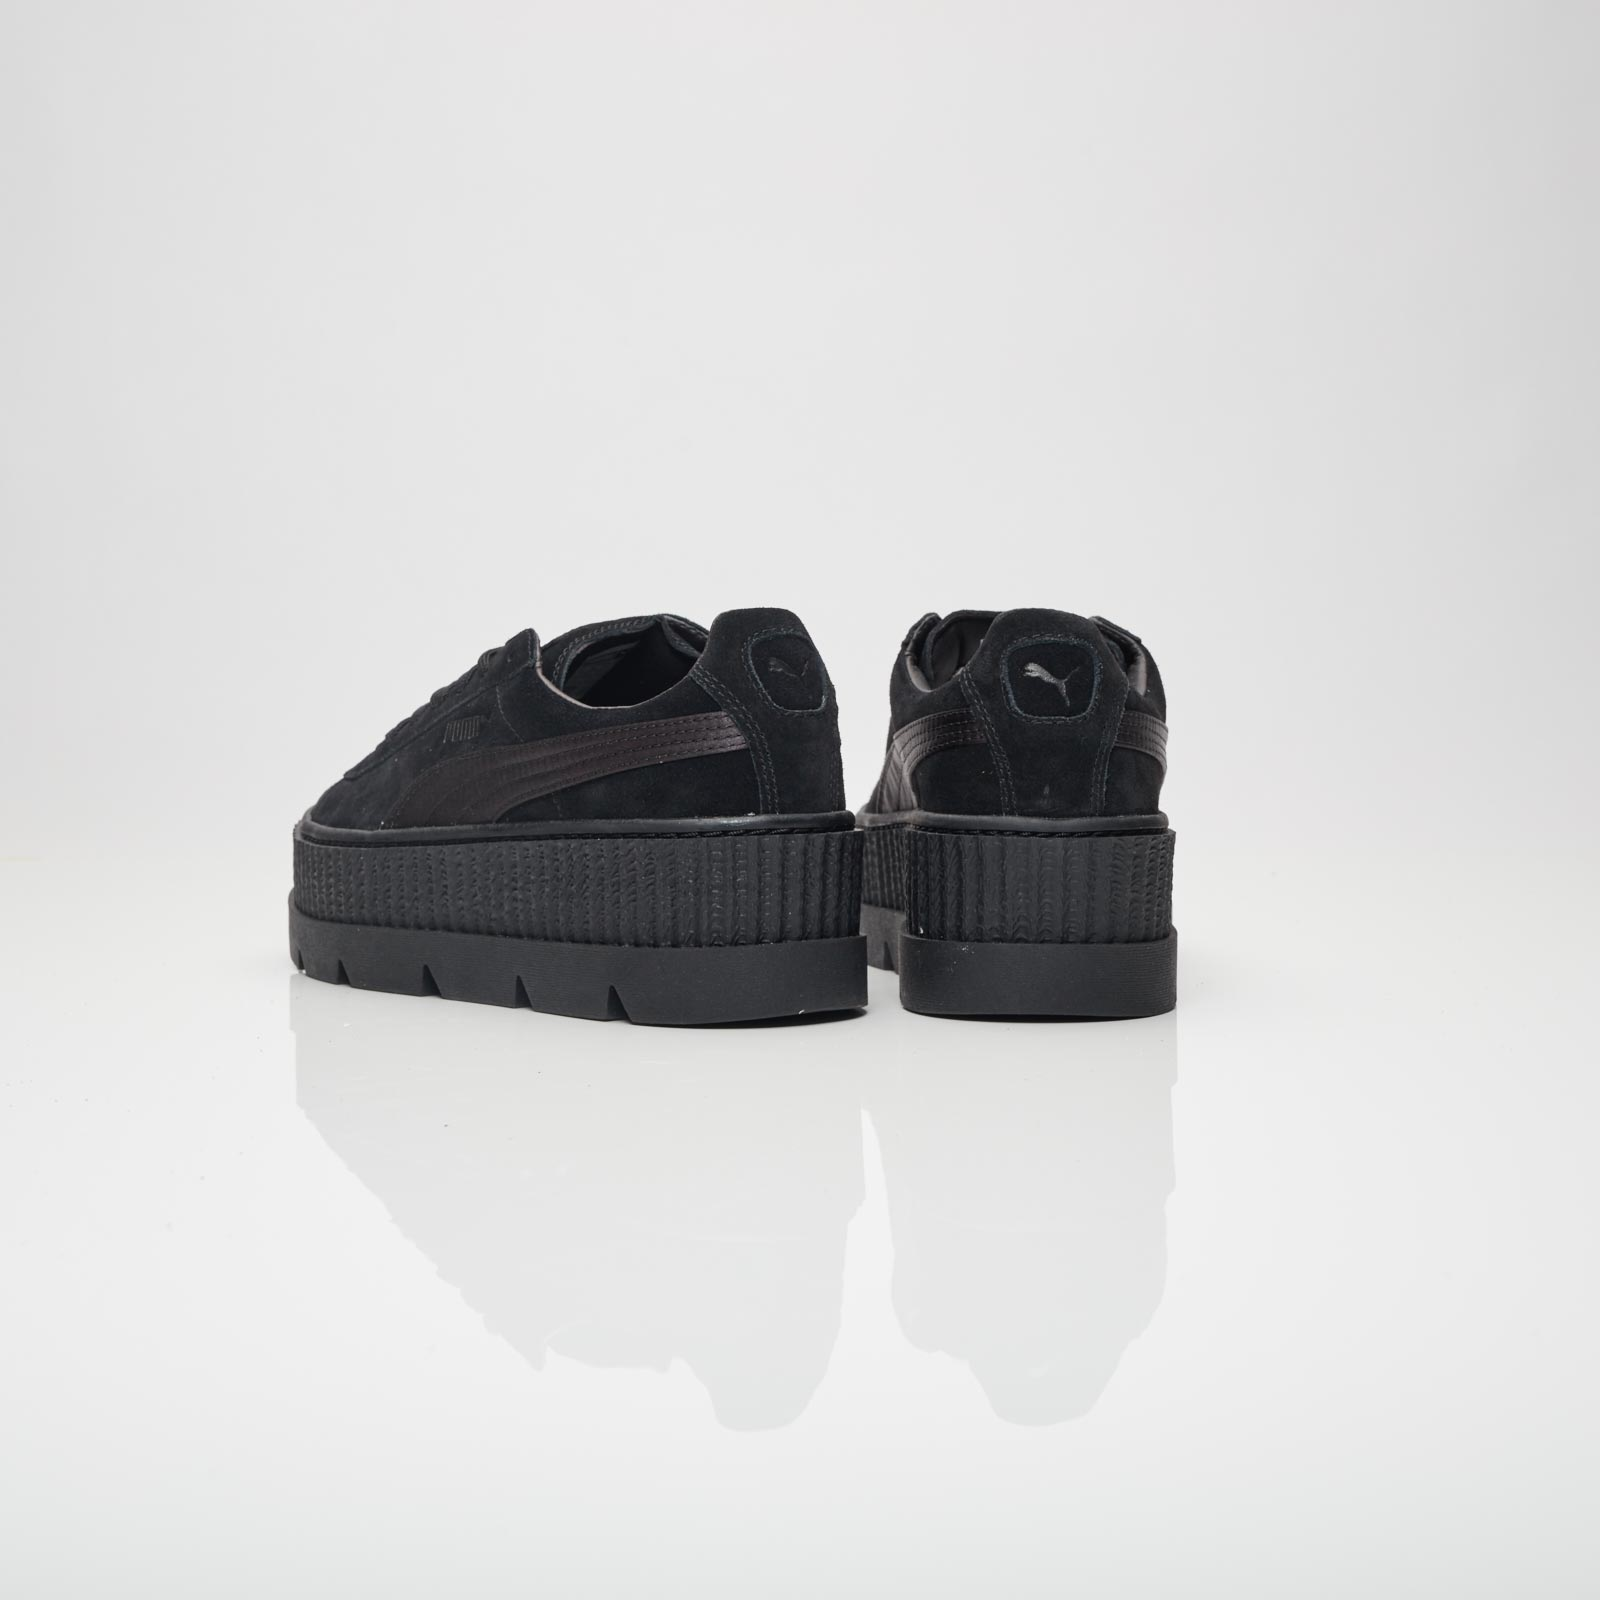 size 40 604b8 561bf Puma Cleated Creeper Suede Wns - 366268-04 - Sneakersnstuff ...